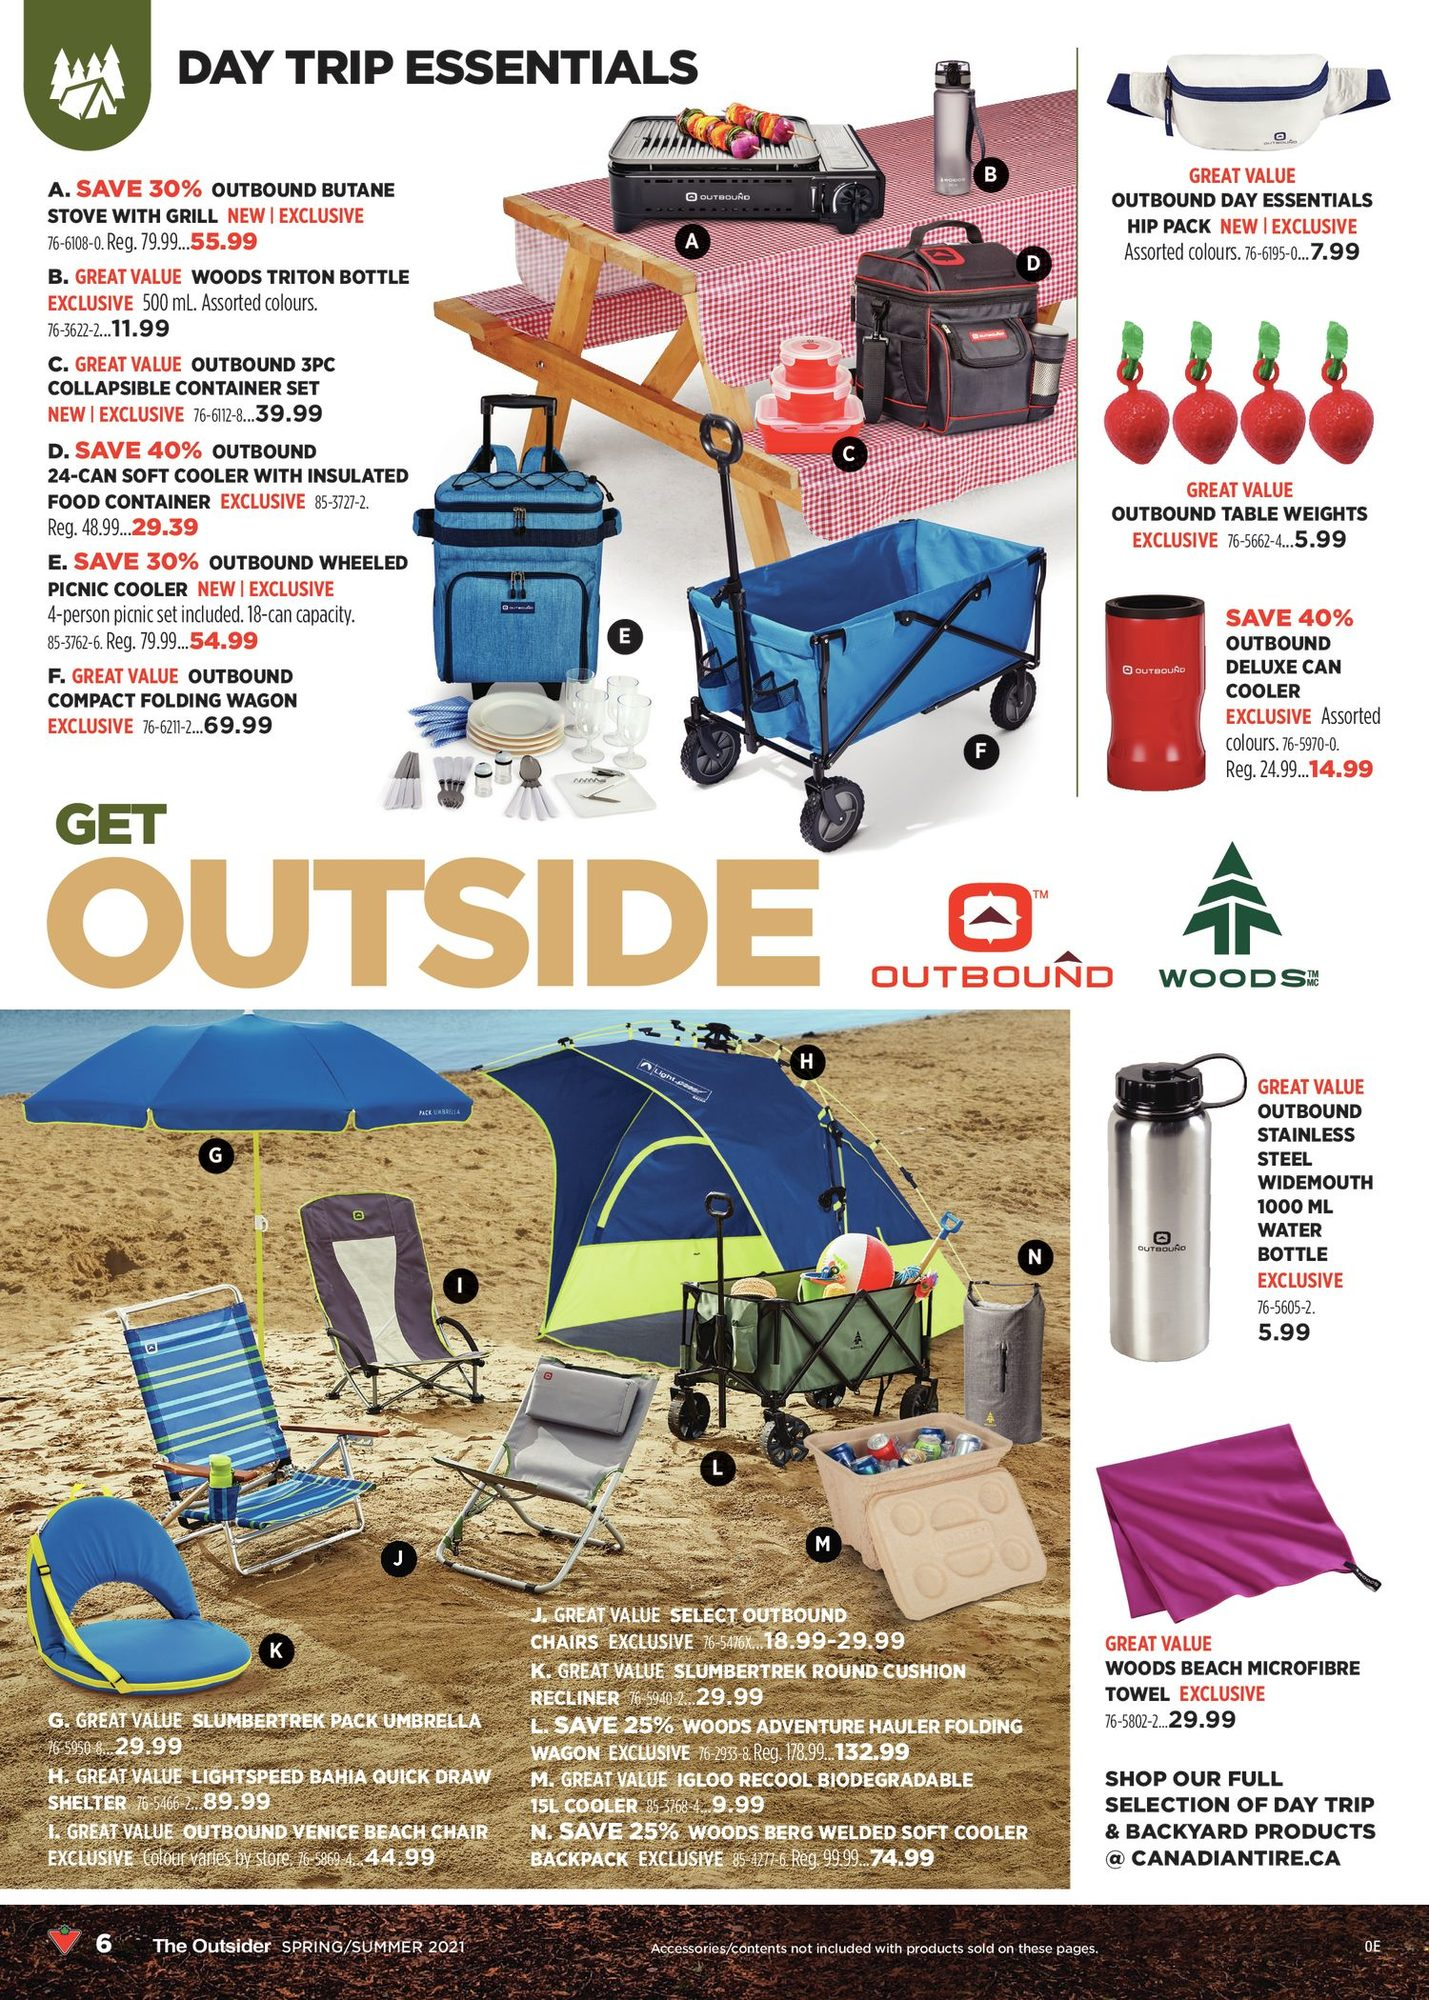 Canadian Tire - The Outsider - Spring/Summer 2021 - Page 6